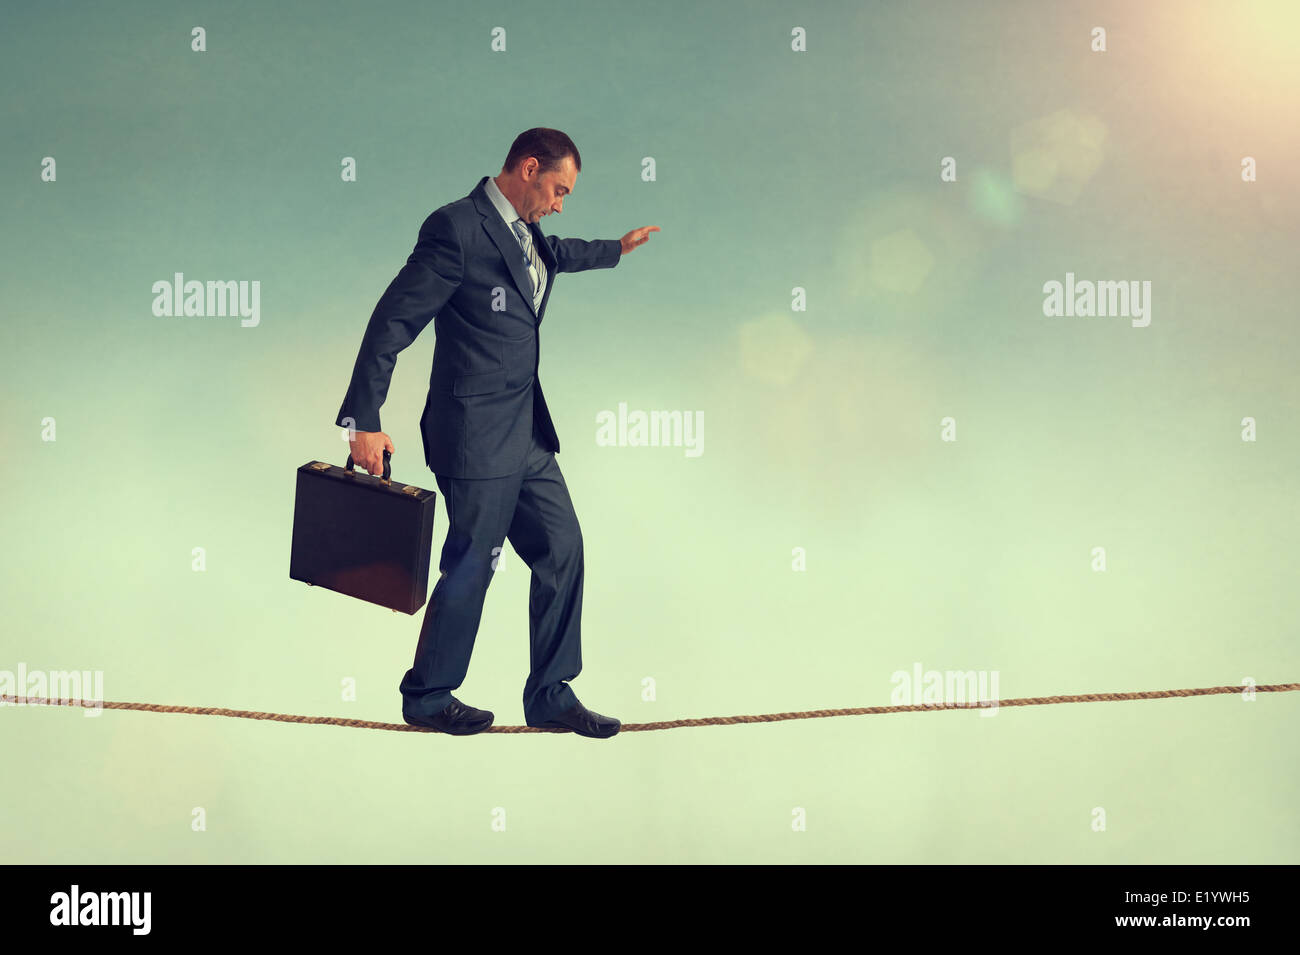 courageous businessman balancing on a tightrope or highwire - Stock Image